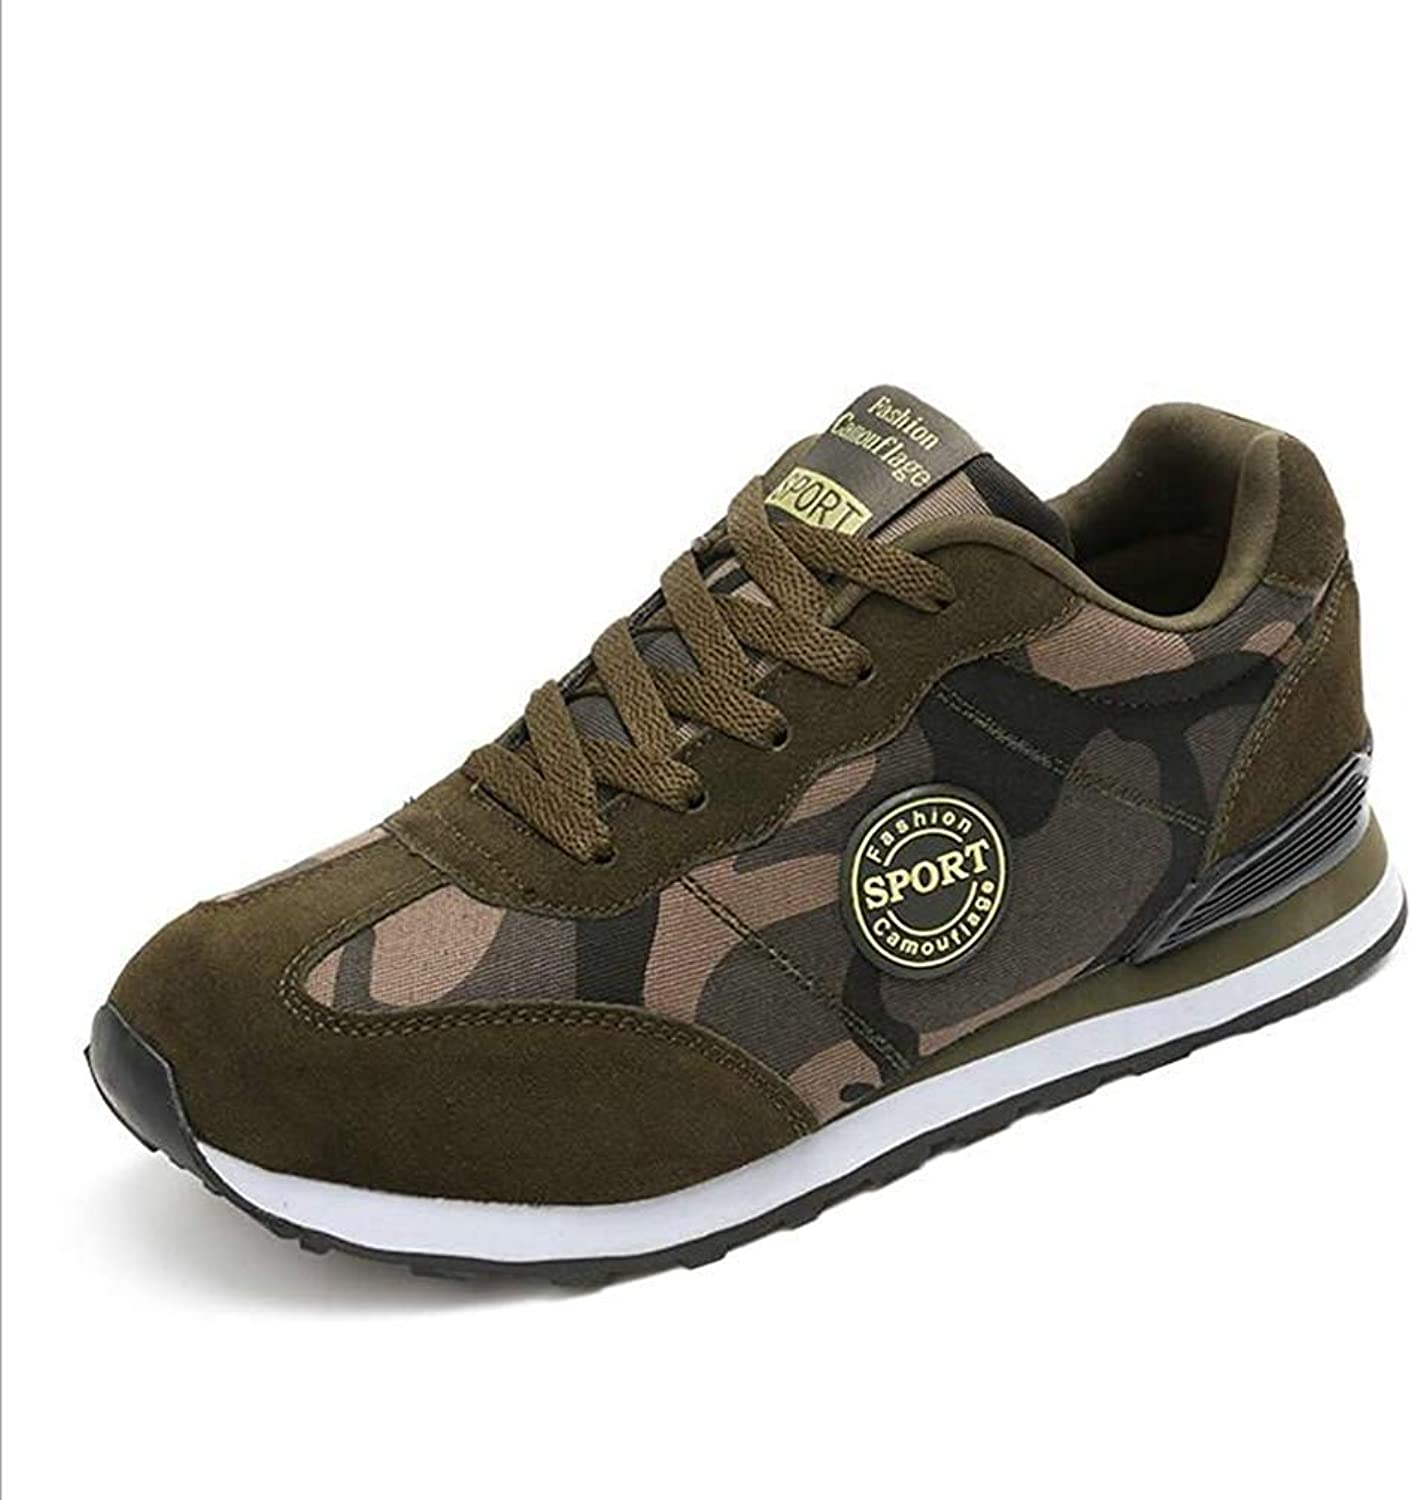 Gcanwea Women Spring Fashion Lace Up Canvas shoes Autumn Luxury Army Green Camouflage Wedge Platform Casual shoes Green 5 M US